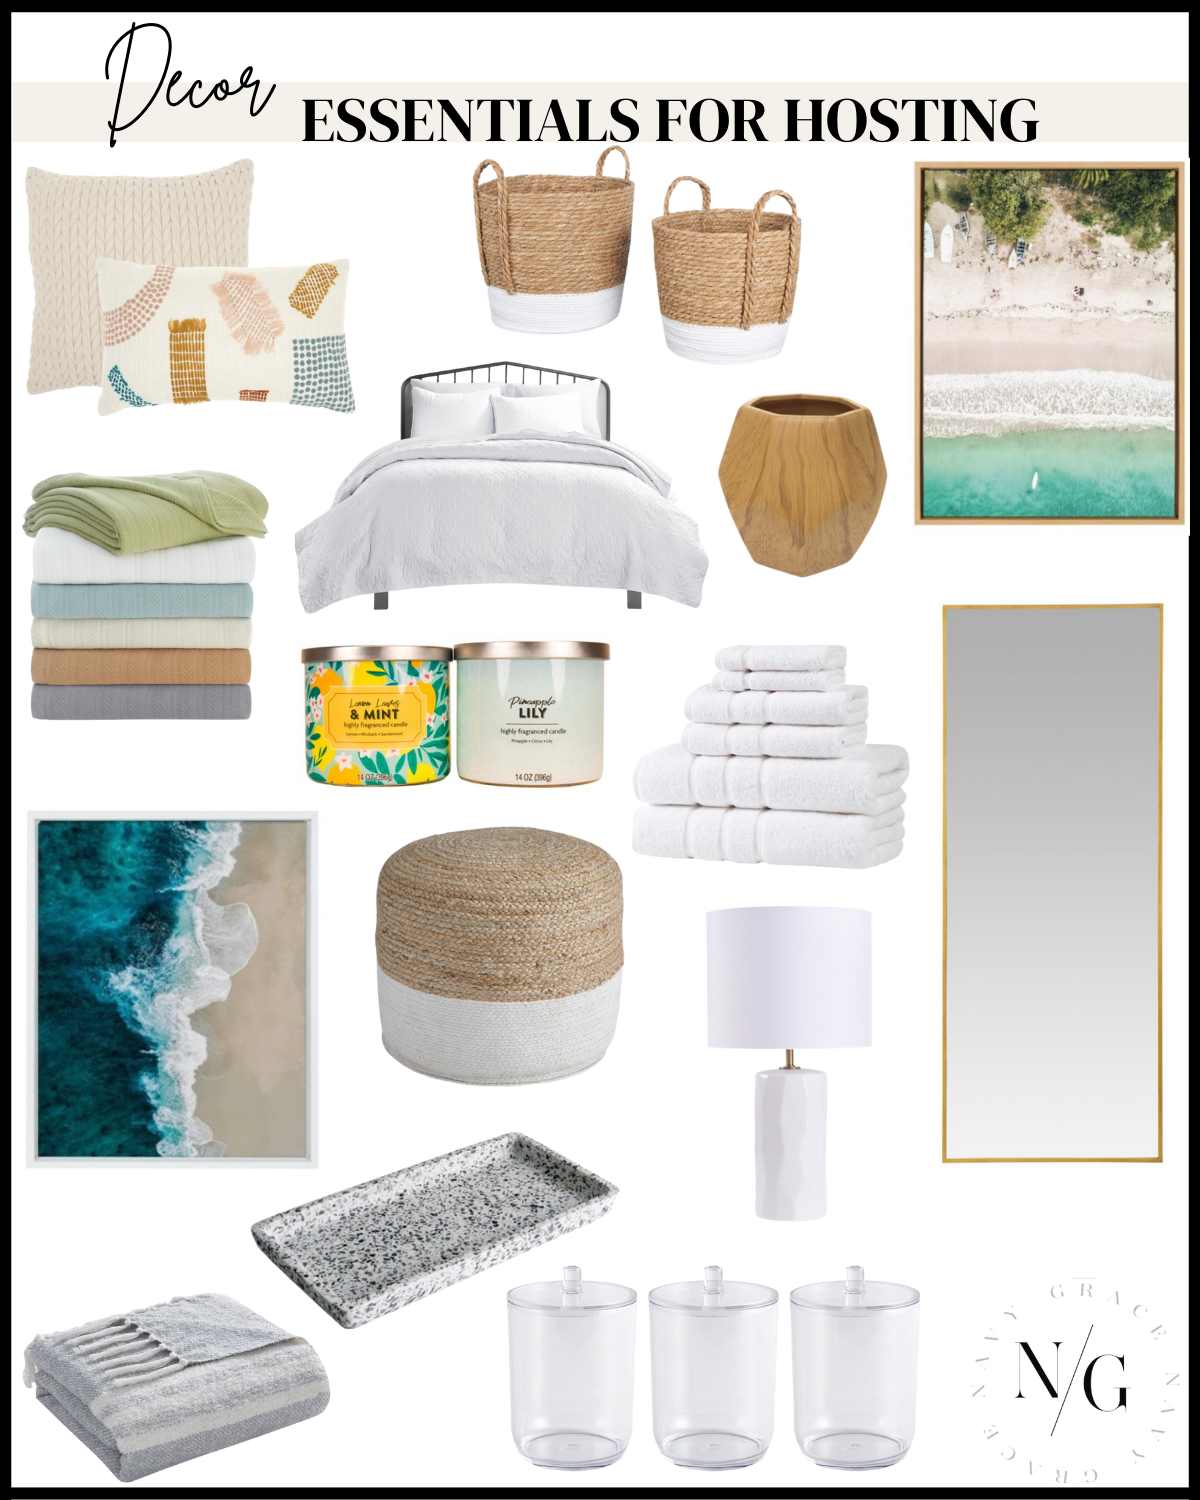 a collage of Decor Essentials for Hosting Guests